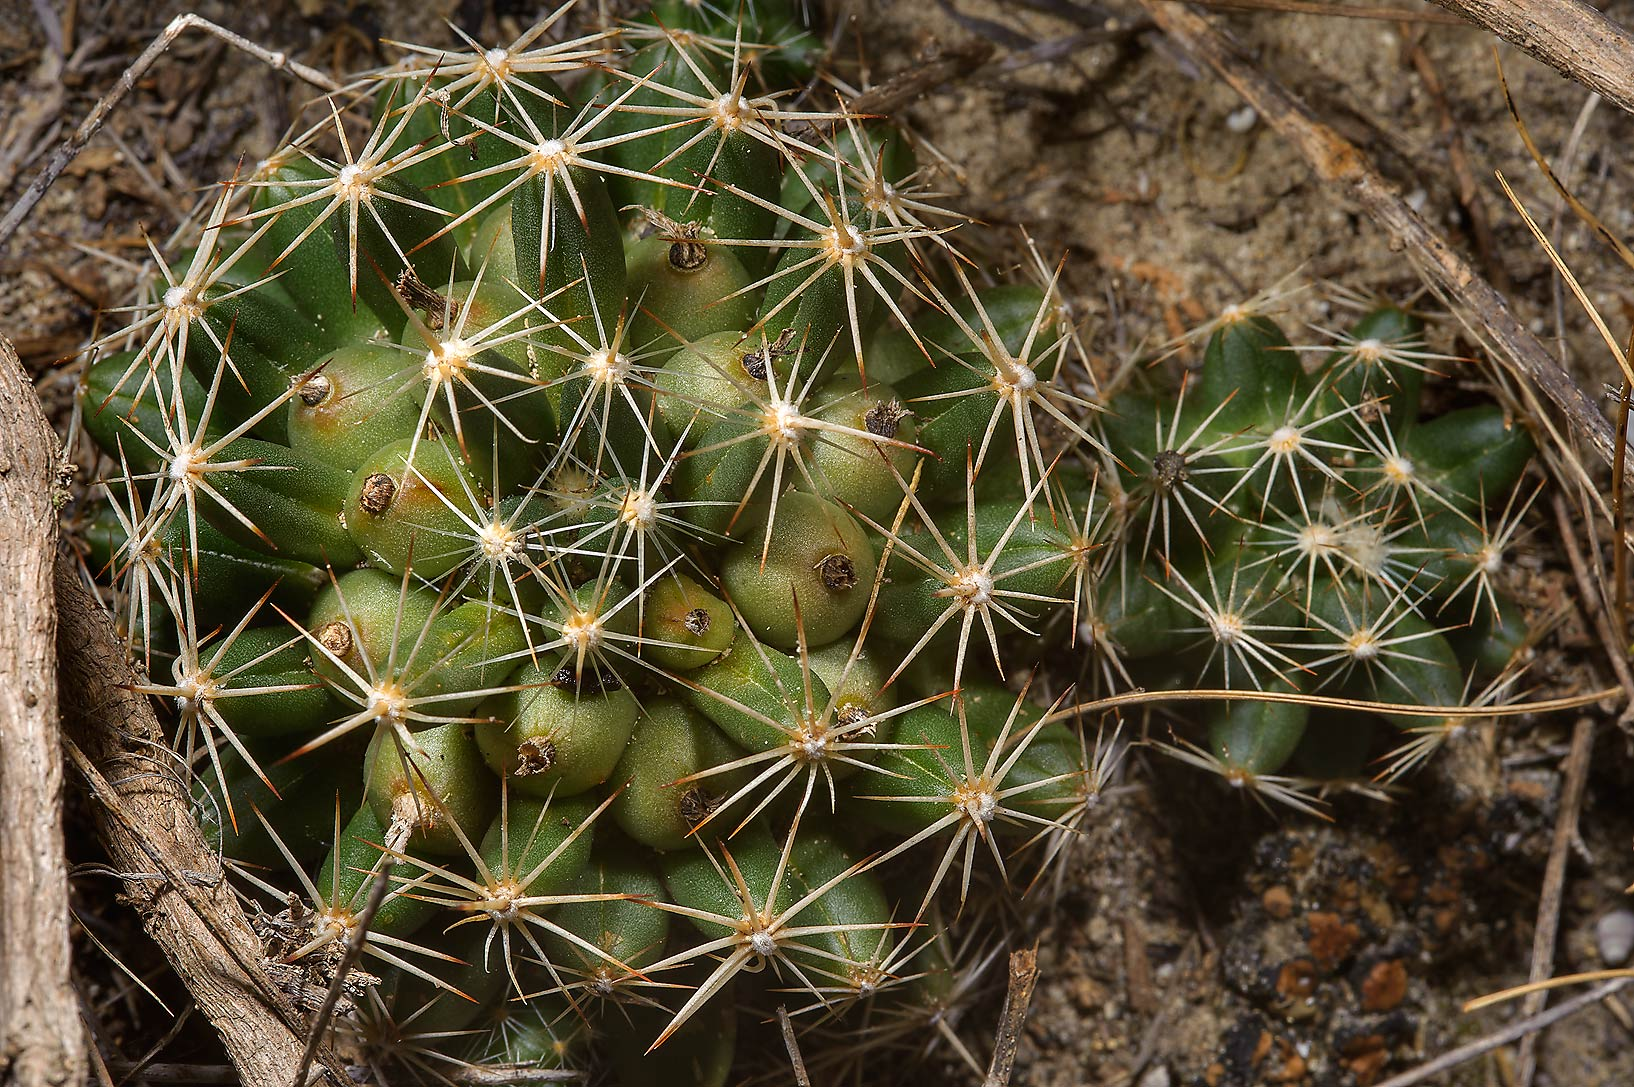 Circular clumps of nipple cactus (Missouri...at FM Rd. 3090 near Navasota. Texas